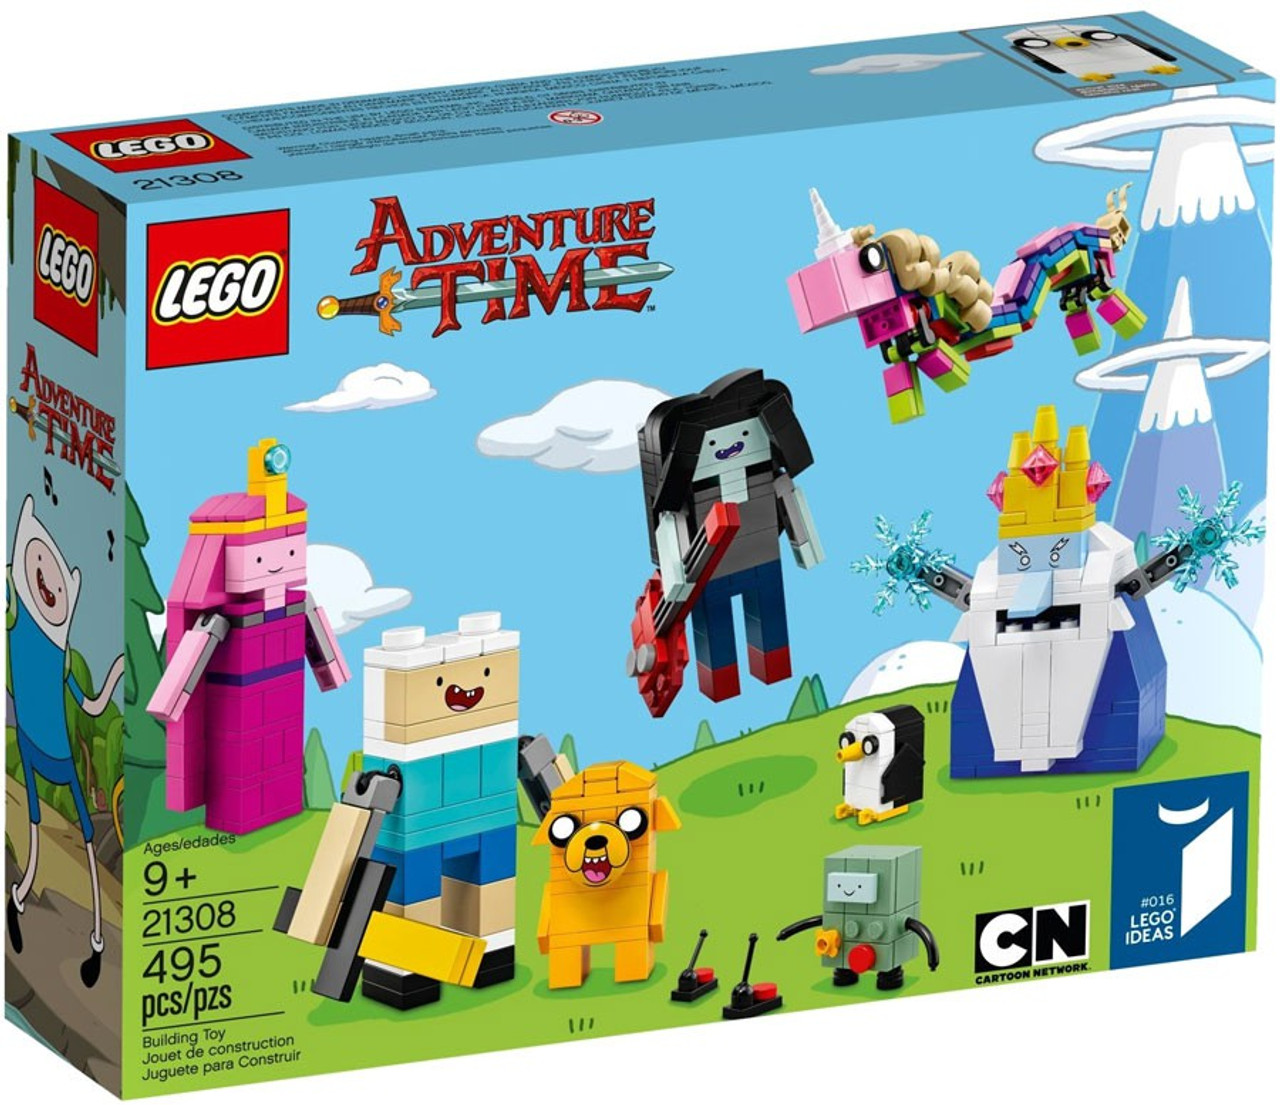 LEGO Ideas Adventure Time Set #21308